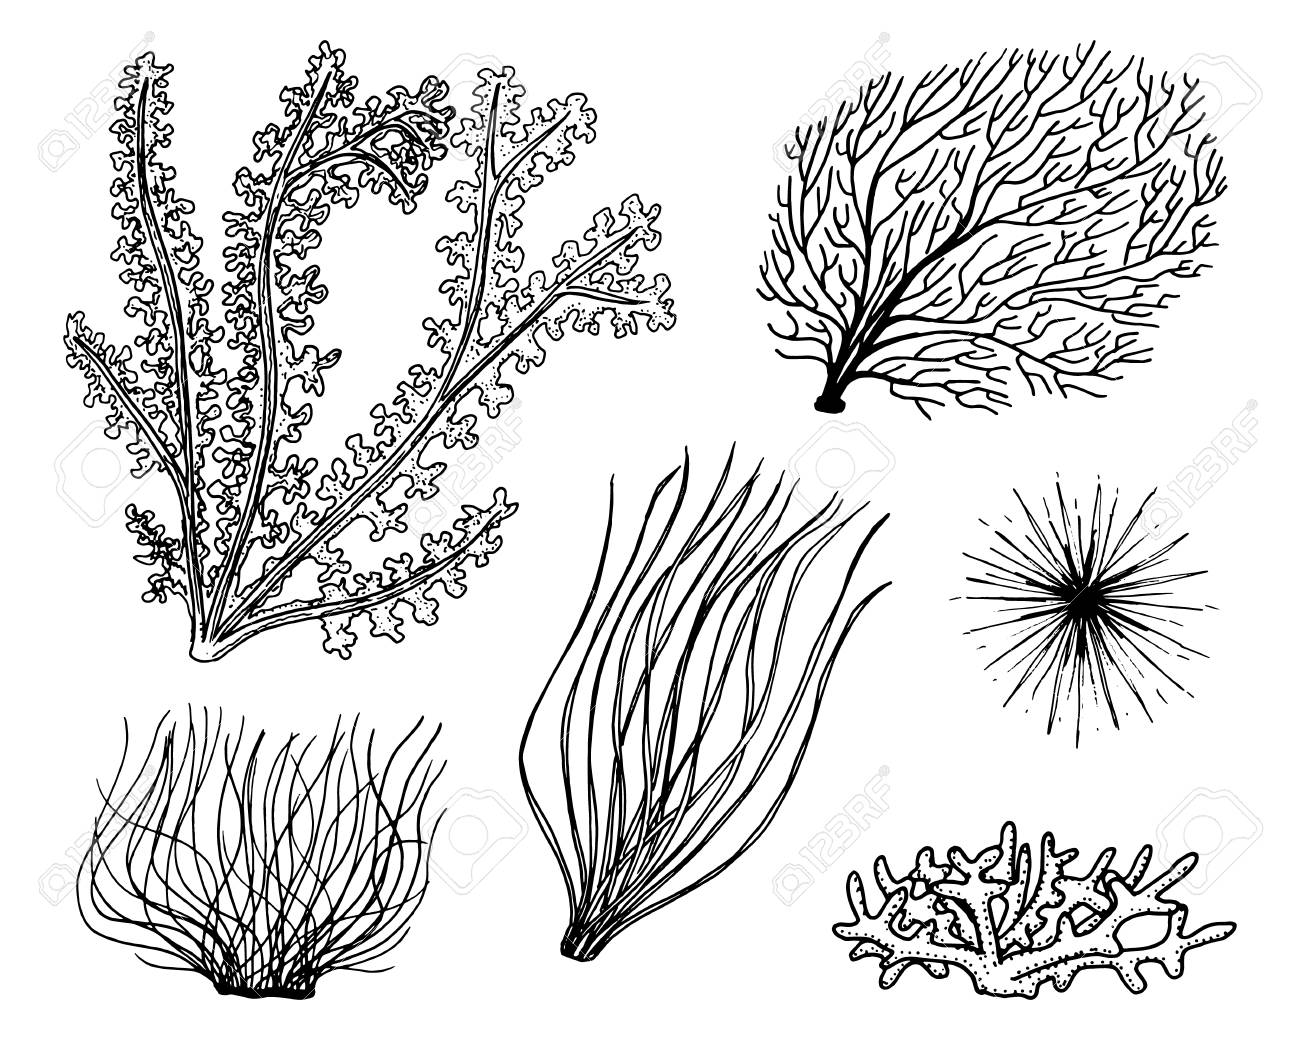 Marine Plants Seaweed Vegetable Life And Food For Fish Engraved Royalty Free Cliparts Vectors And Stock Illustration Image 91977226